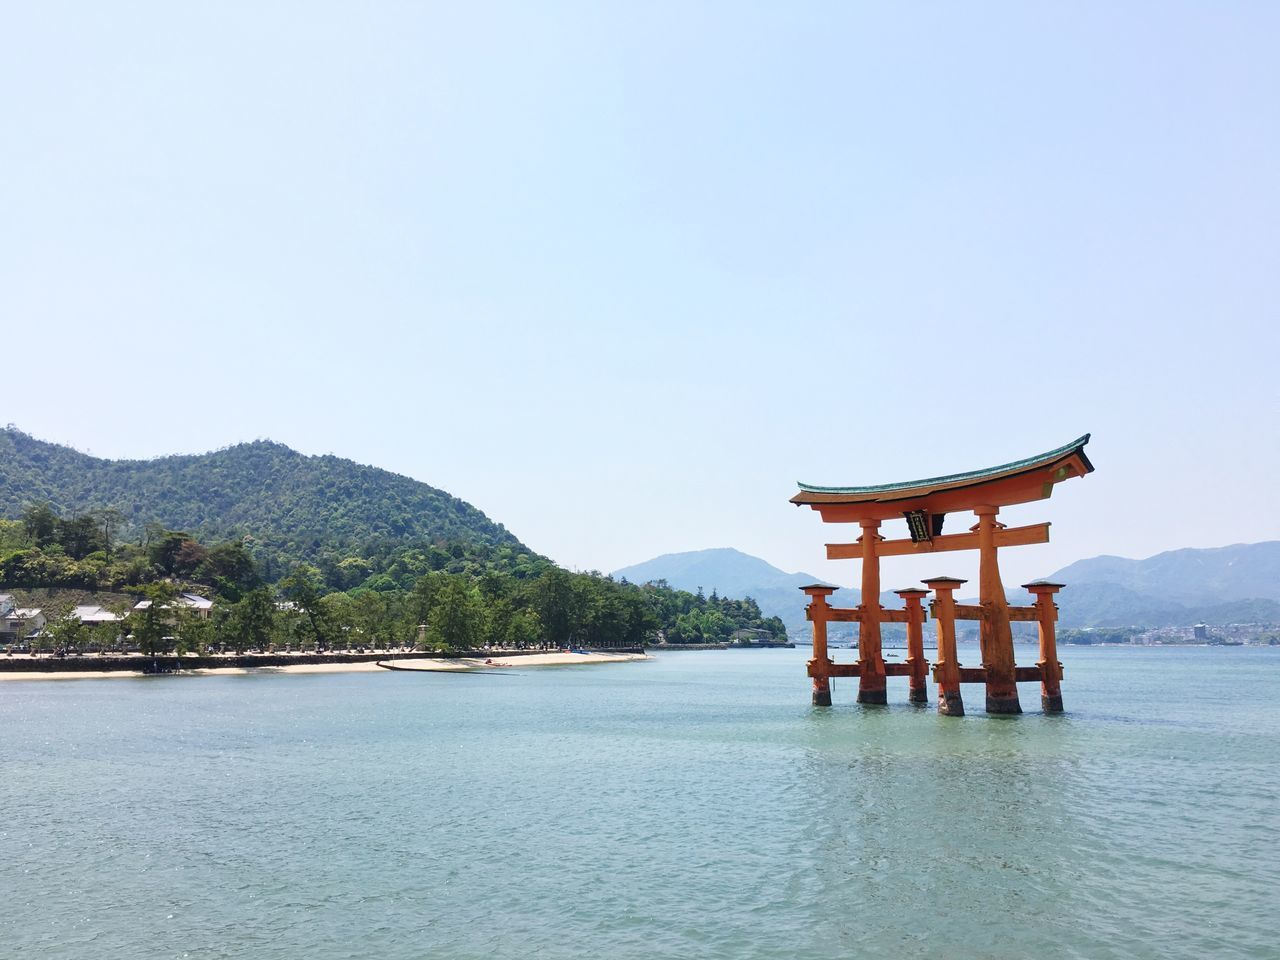 Water Built Structure Nature Architecture Beauty In Nature Tranquility Clear Sky Scenics Sea Day No People Travel Destinations Hiroshima Miyajima Torii Japanese Shrine Itsukushima Shrine Sea And Sky